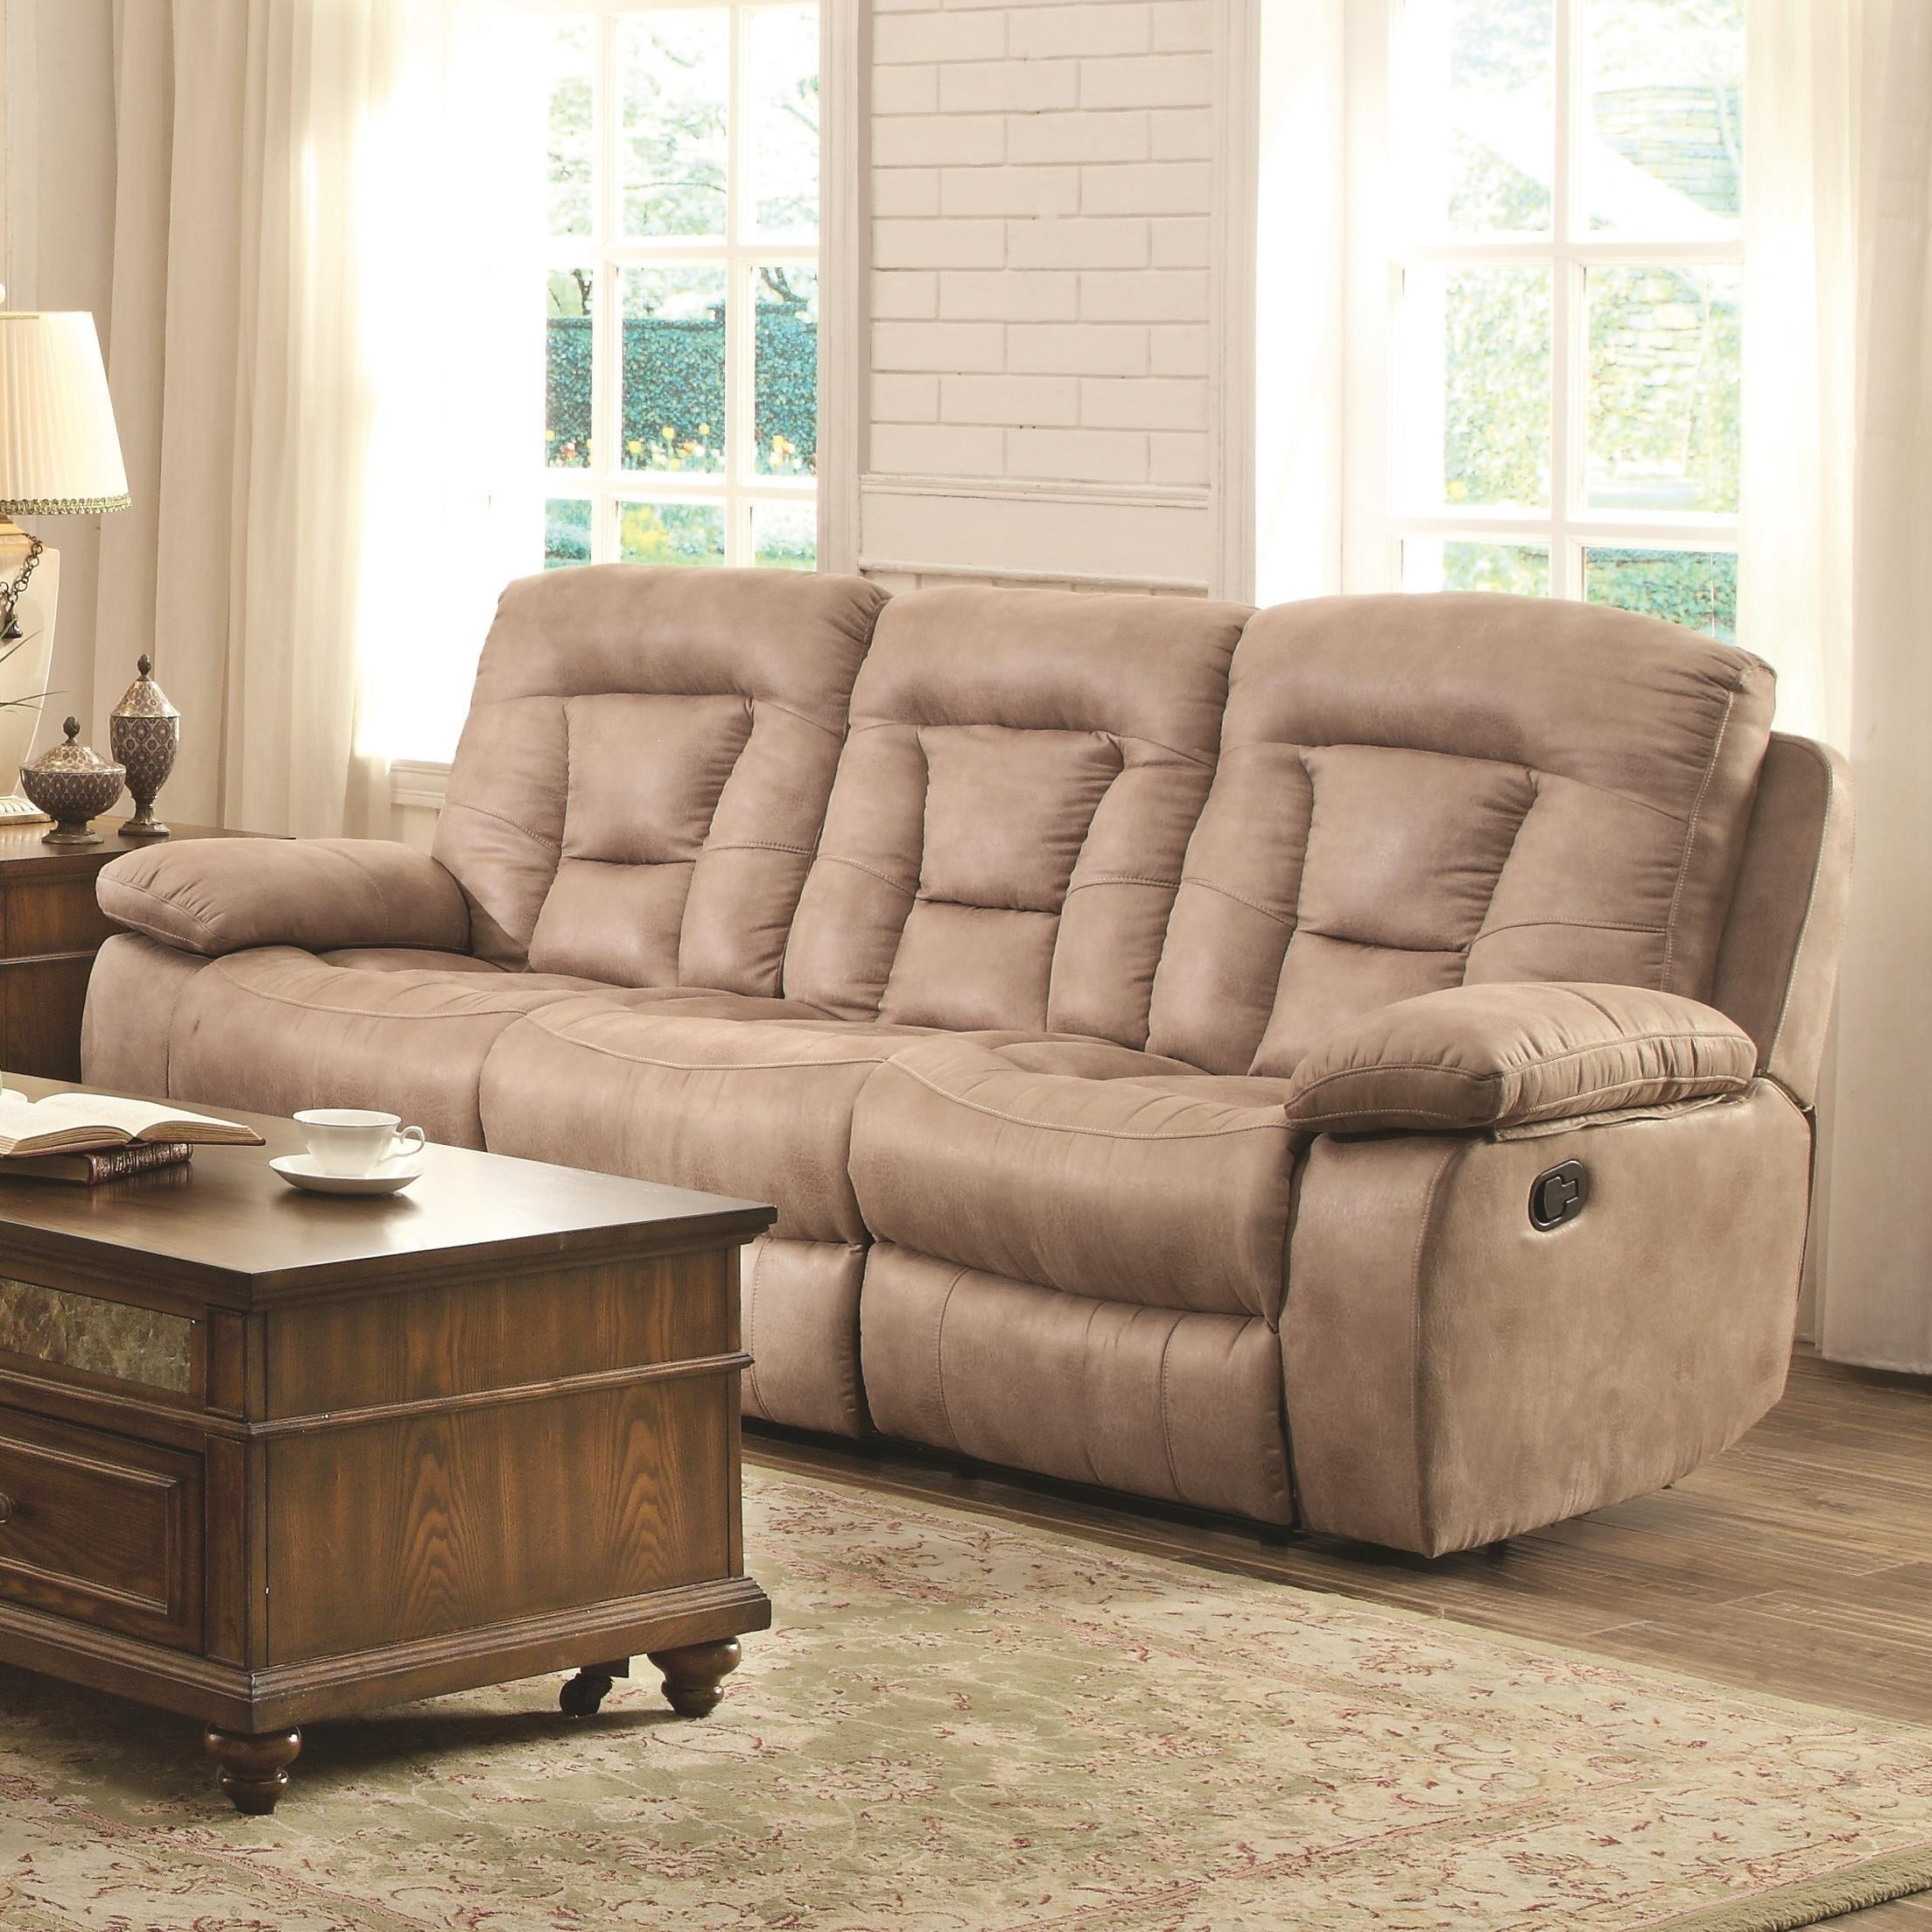 Coaster 601861 Evensky Reclining Sofa With Bone Performance Upholstery With Regard To Coasters Sofas (Image 5 of 20)